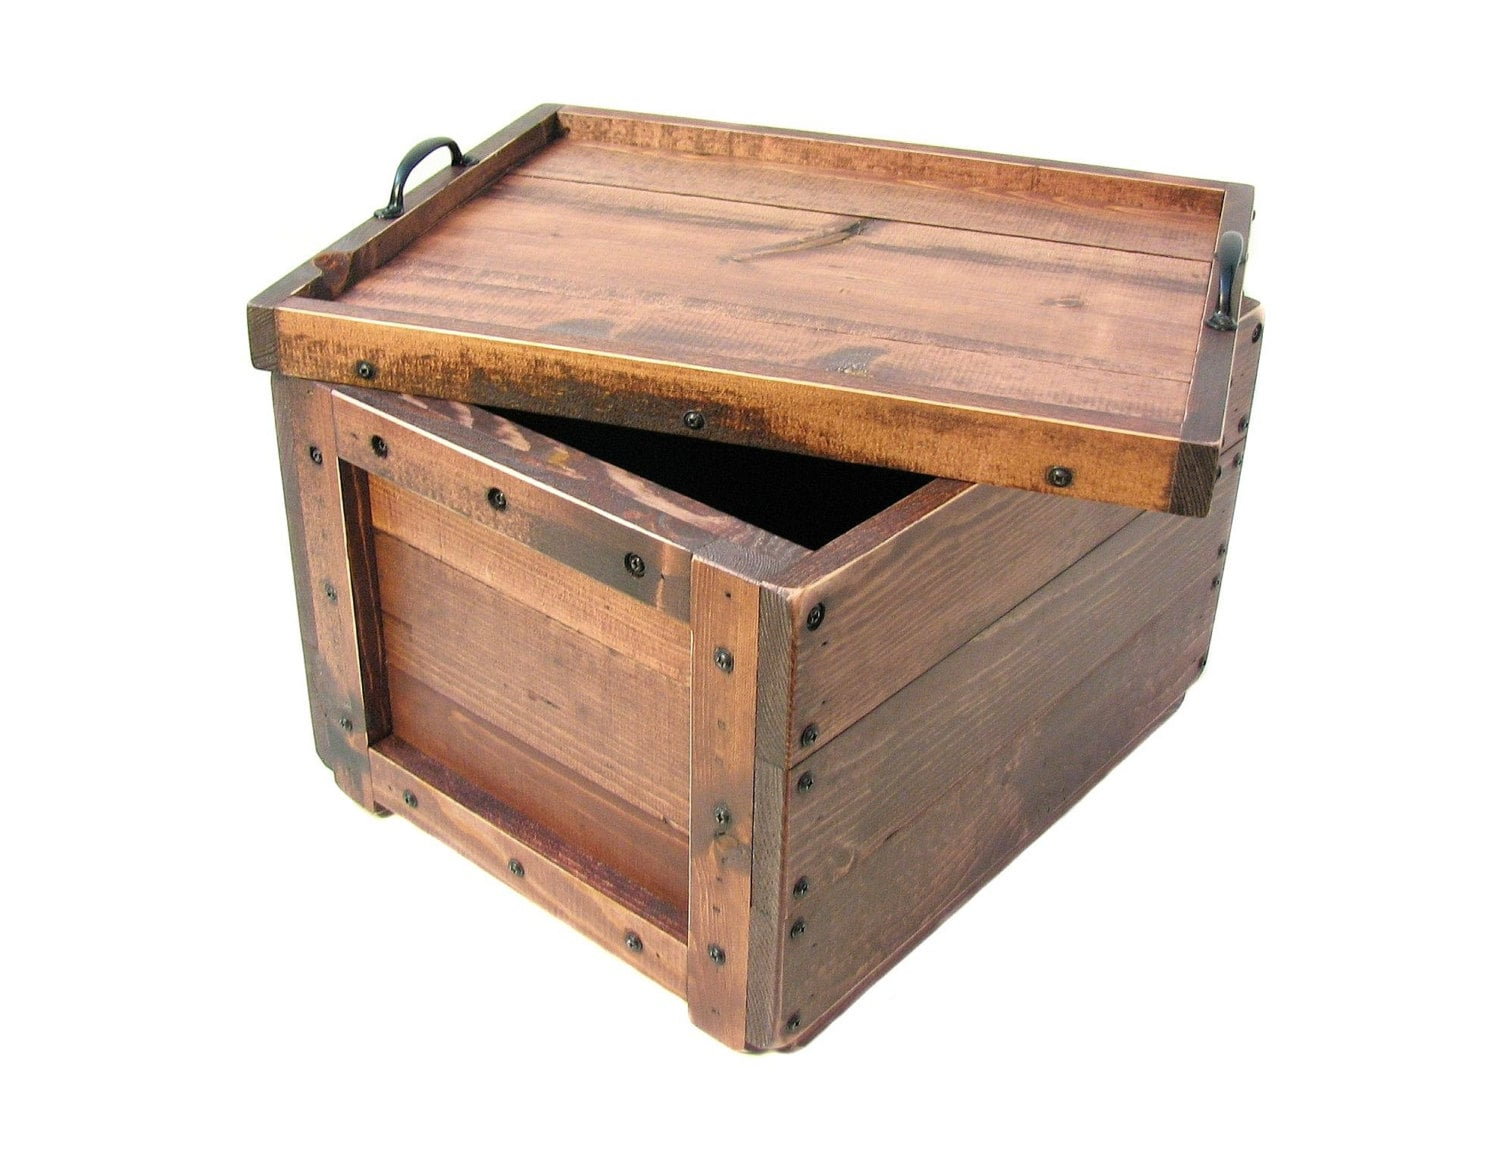 Lidded Wood Crate Wooden Box With Lid Keepsake Box Hope